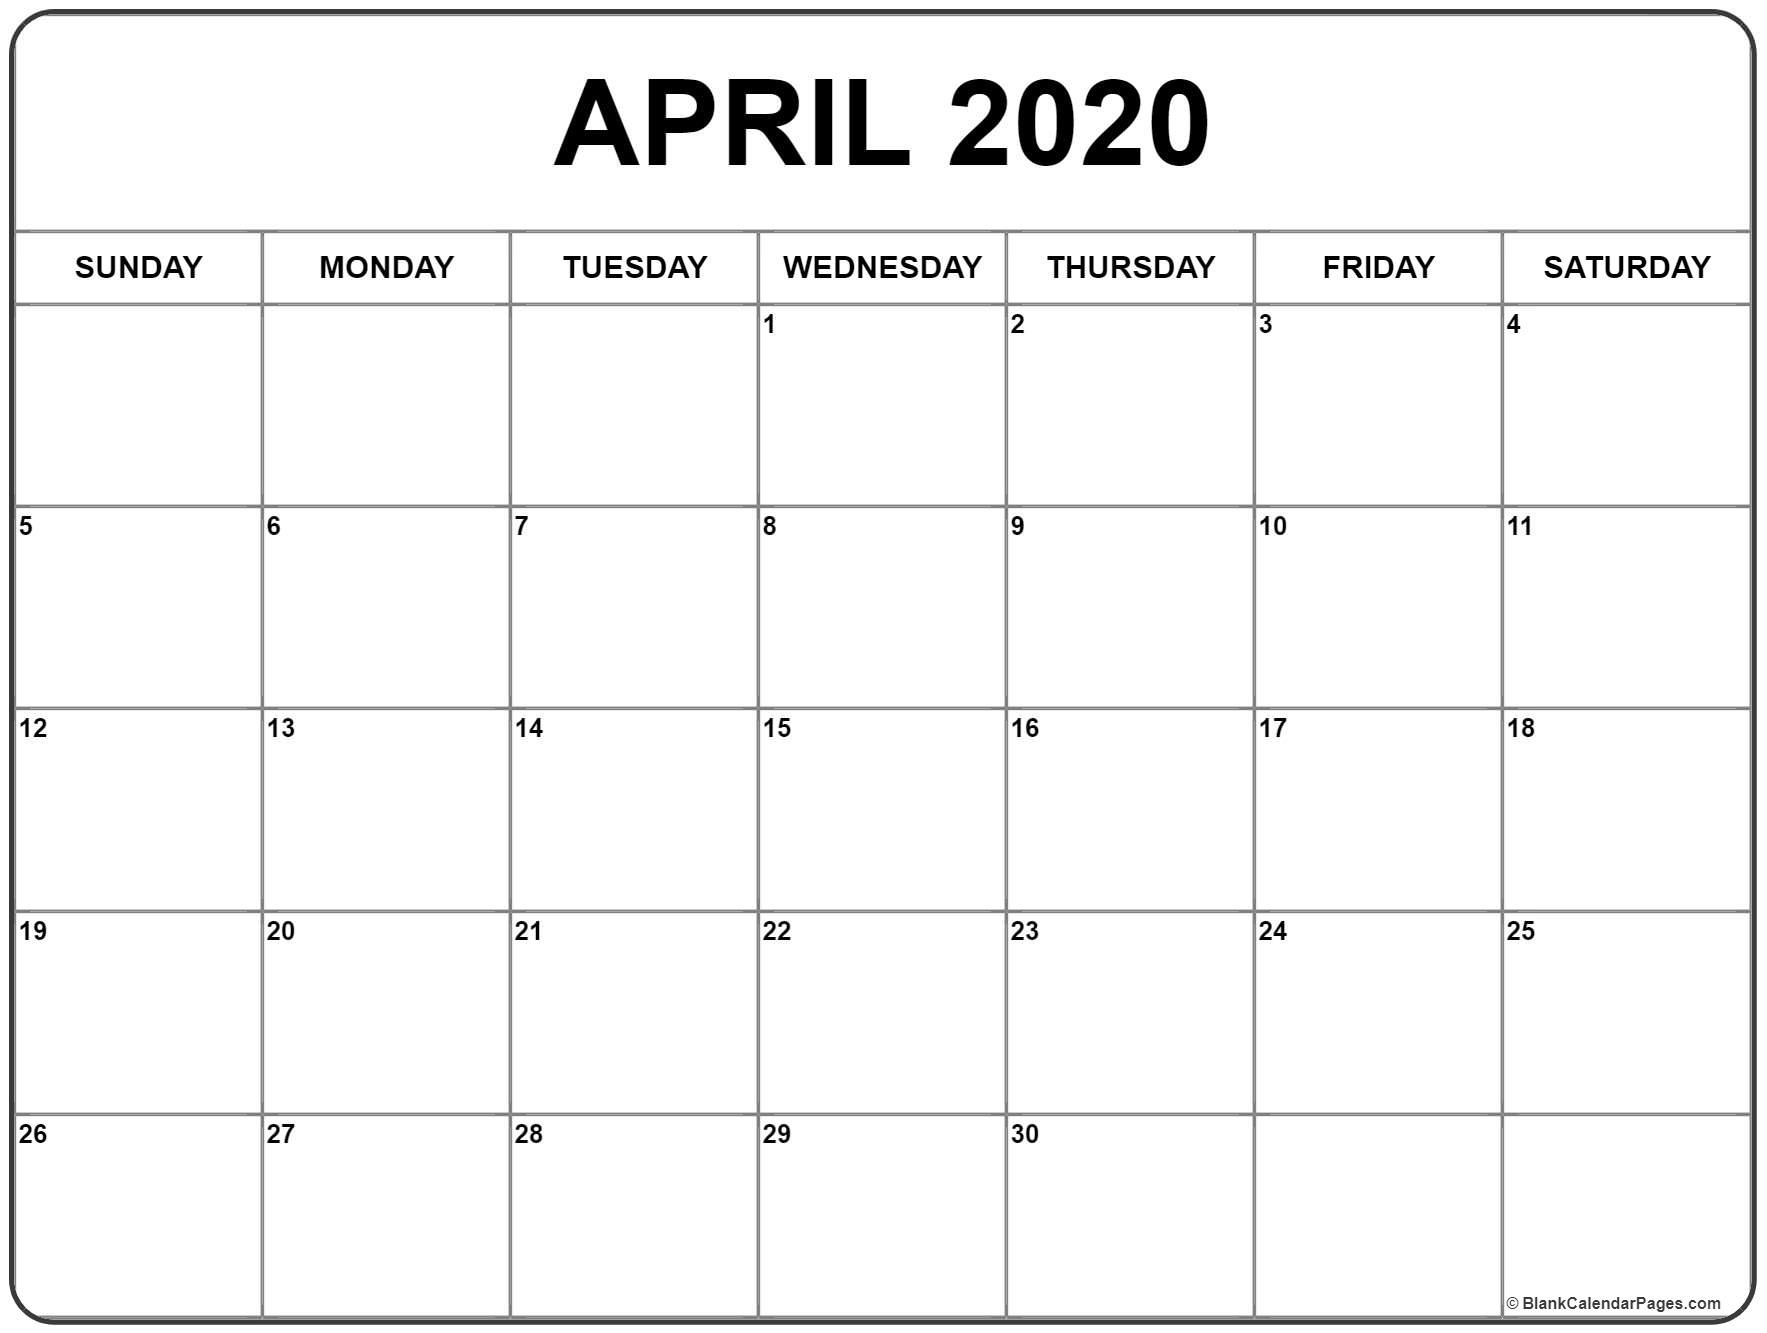 April 2020 Calendar | Free Printable Monthly Calendars_Blank Calendar Canada 2020